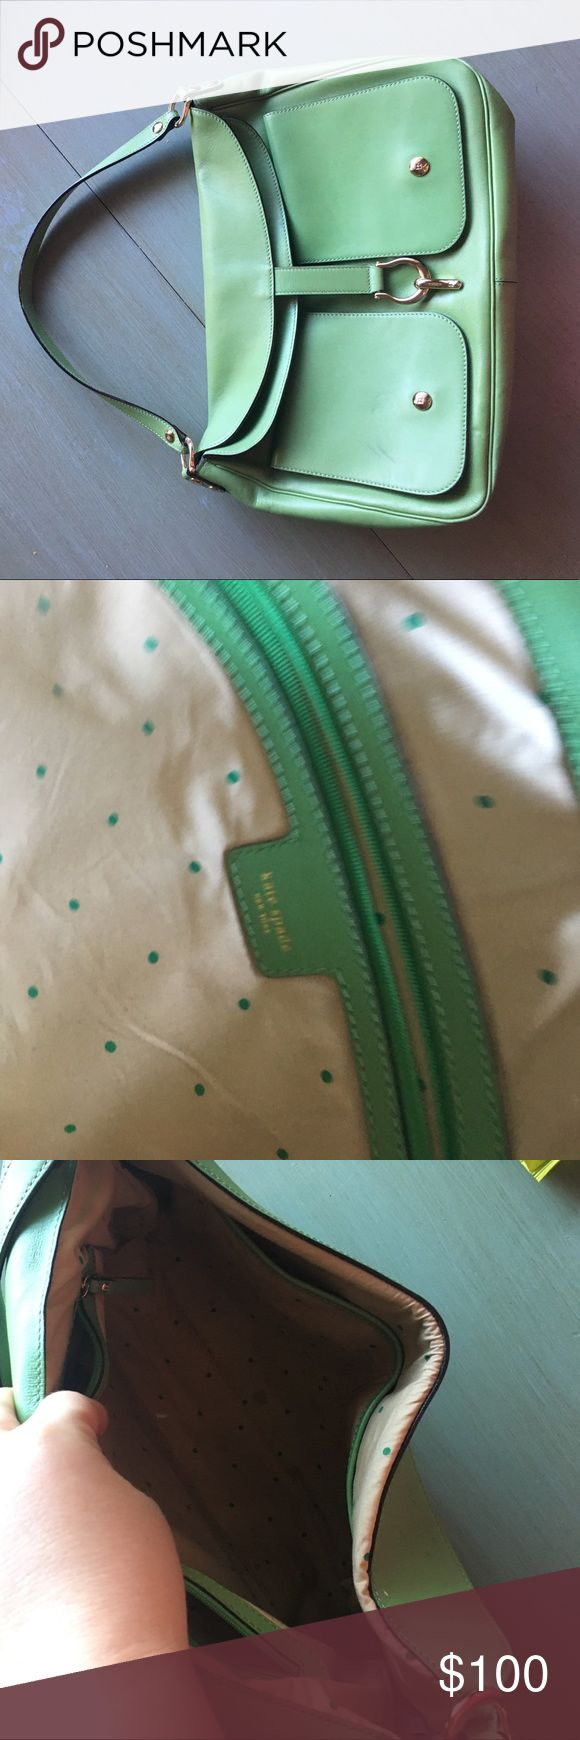 Kate Spade Lime Green Shoulder Purse Super fun, statement green purse from Kate Spade. Some small stains (see photos)  but not visible when purse is closed. kate spade Bags Shoulder Bags